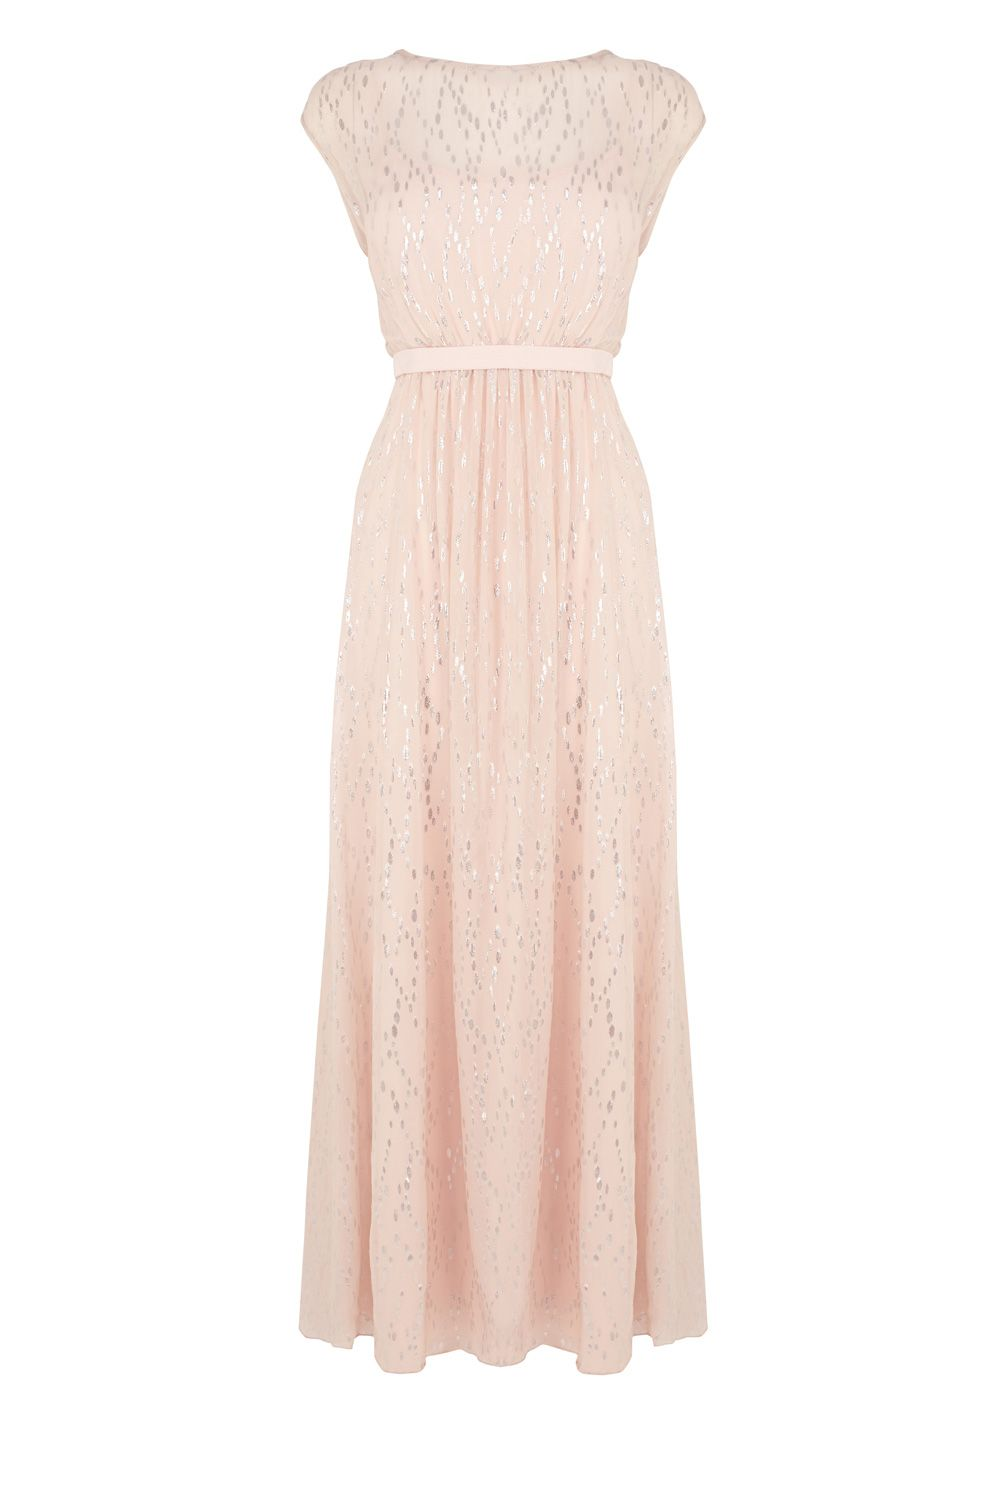 Prom dresses outfits pinks lori lee sparkle spot dress coast shop online for the latest in womens occasion wear accessories bridesmaid dresses ombrellifo Choice Image